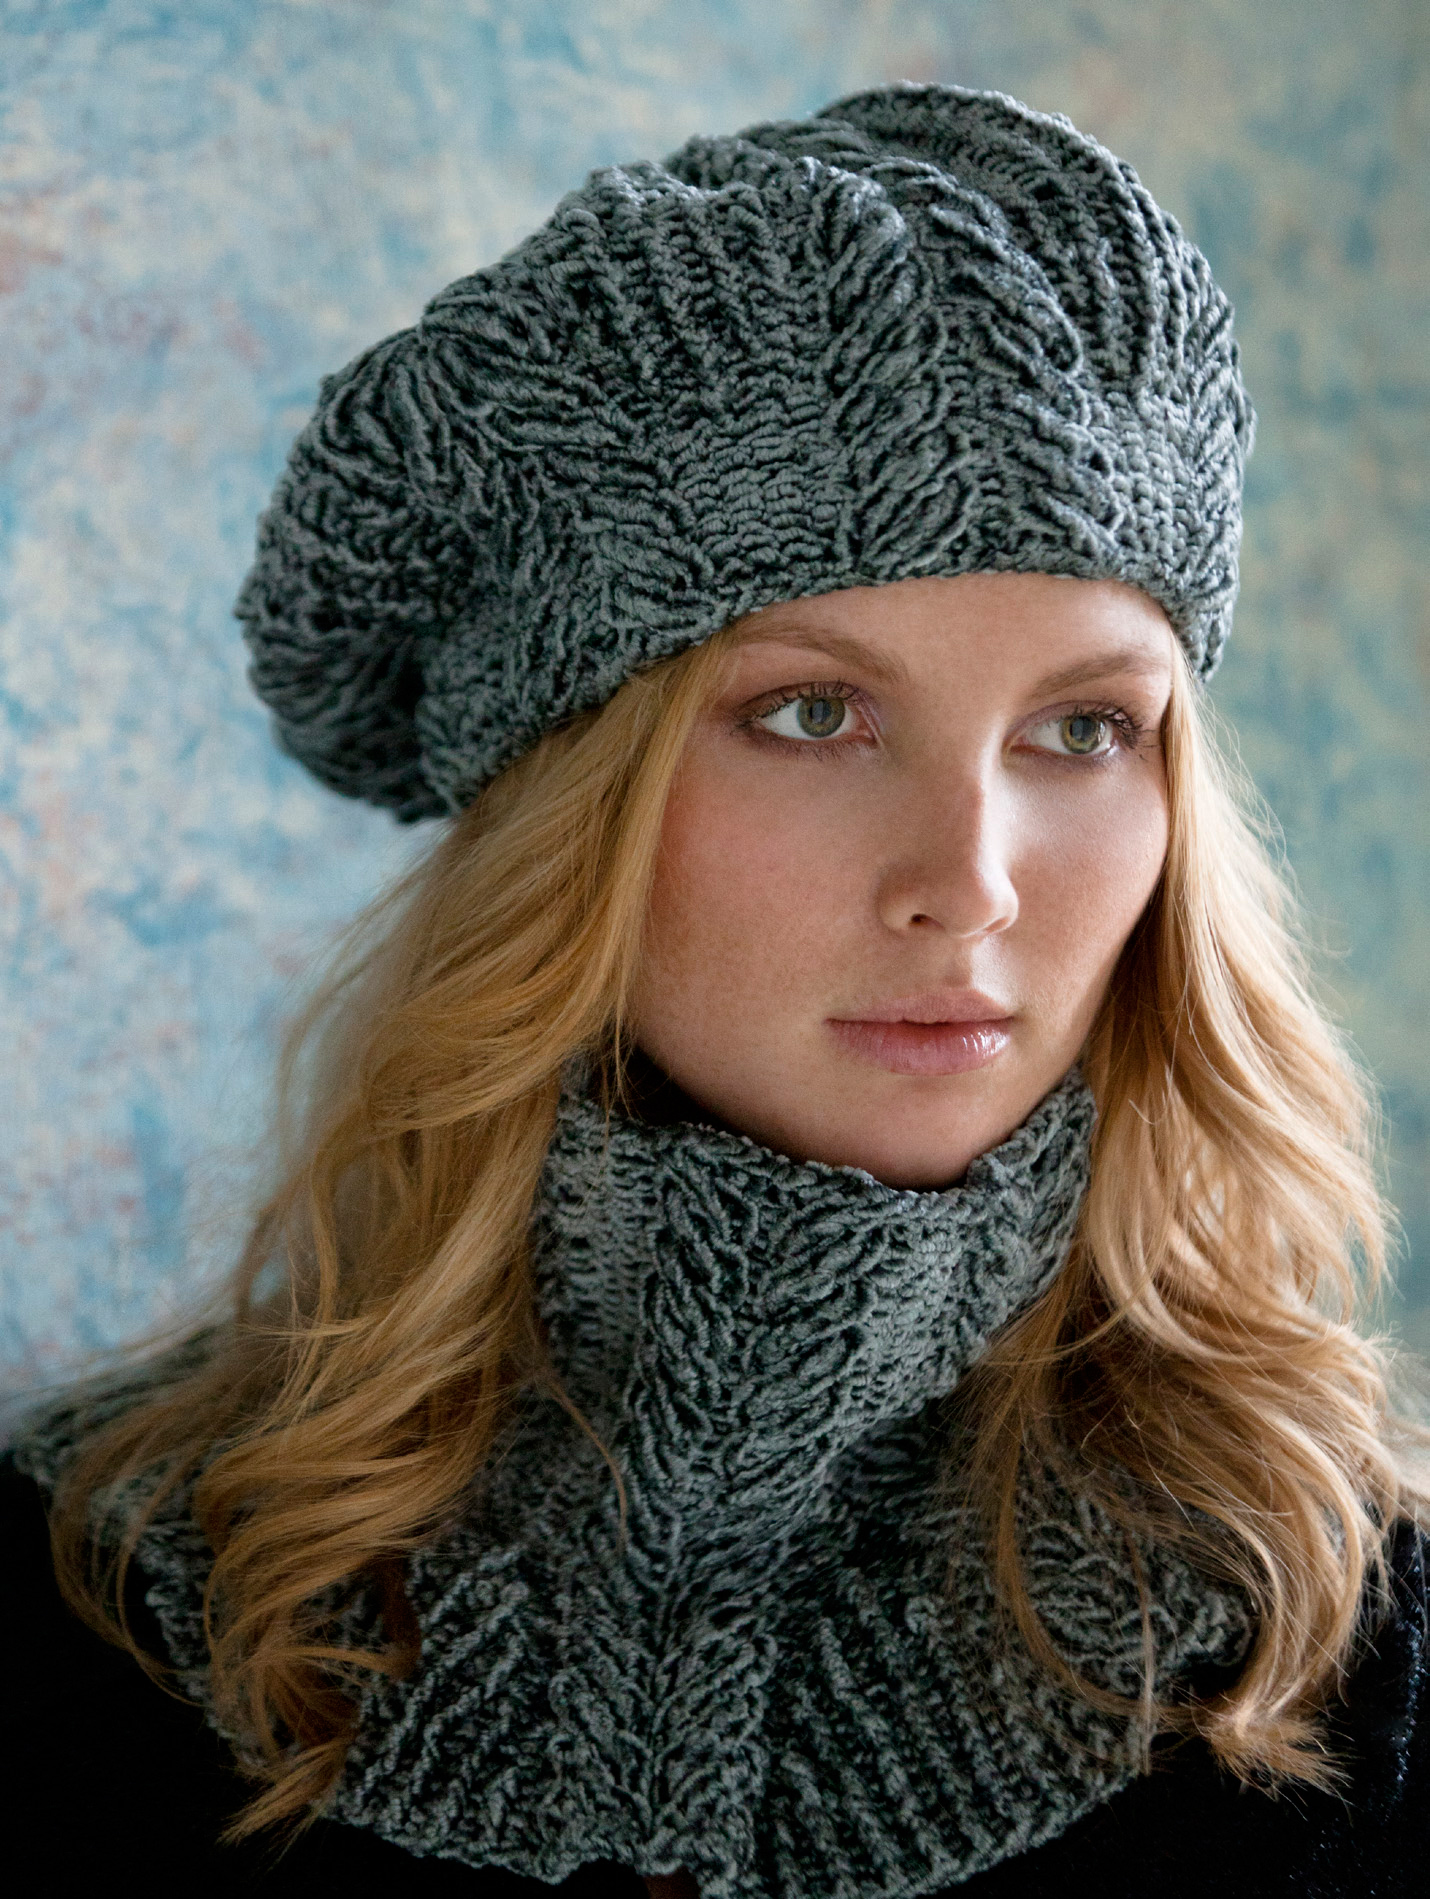 Free Knitting Patterns Berets Easy : KNIT OR CROCHET BERET PATTERN   Easy Crochet Patterns